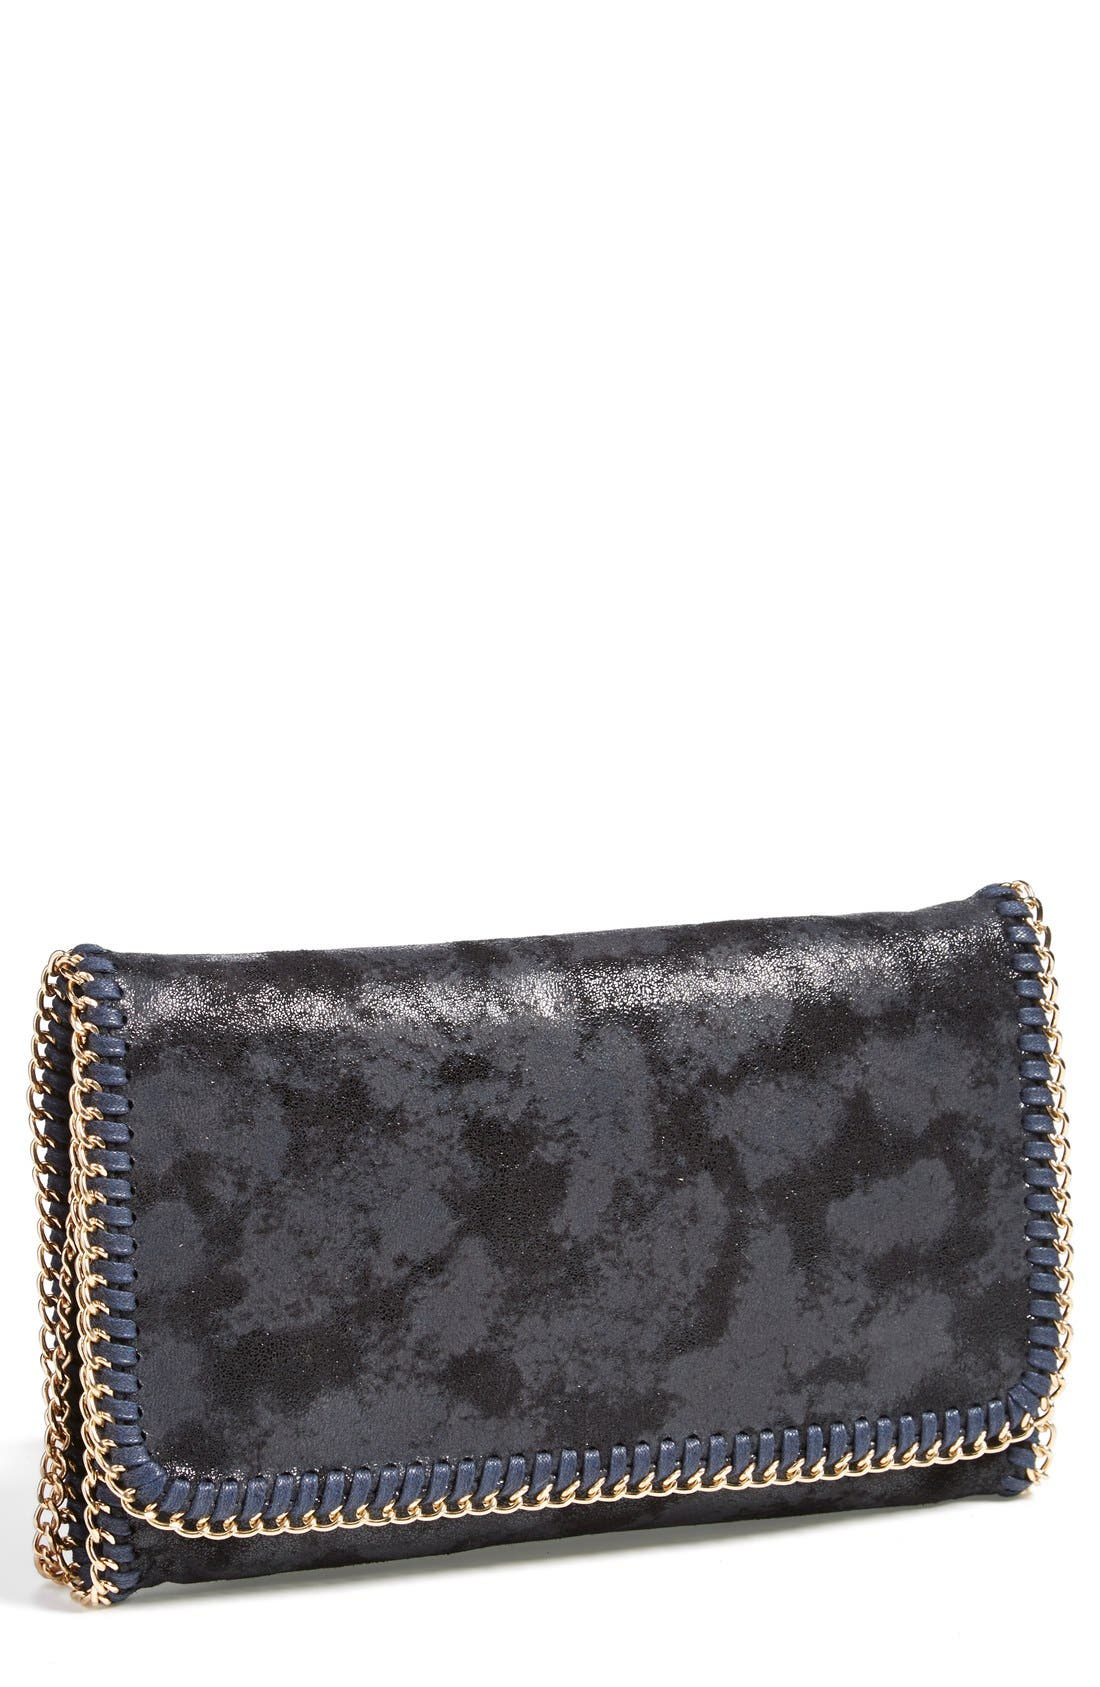 Main Image - Phase 3 'Crackle' Clutch